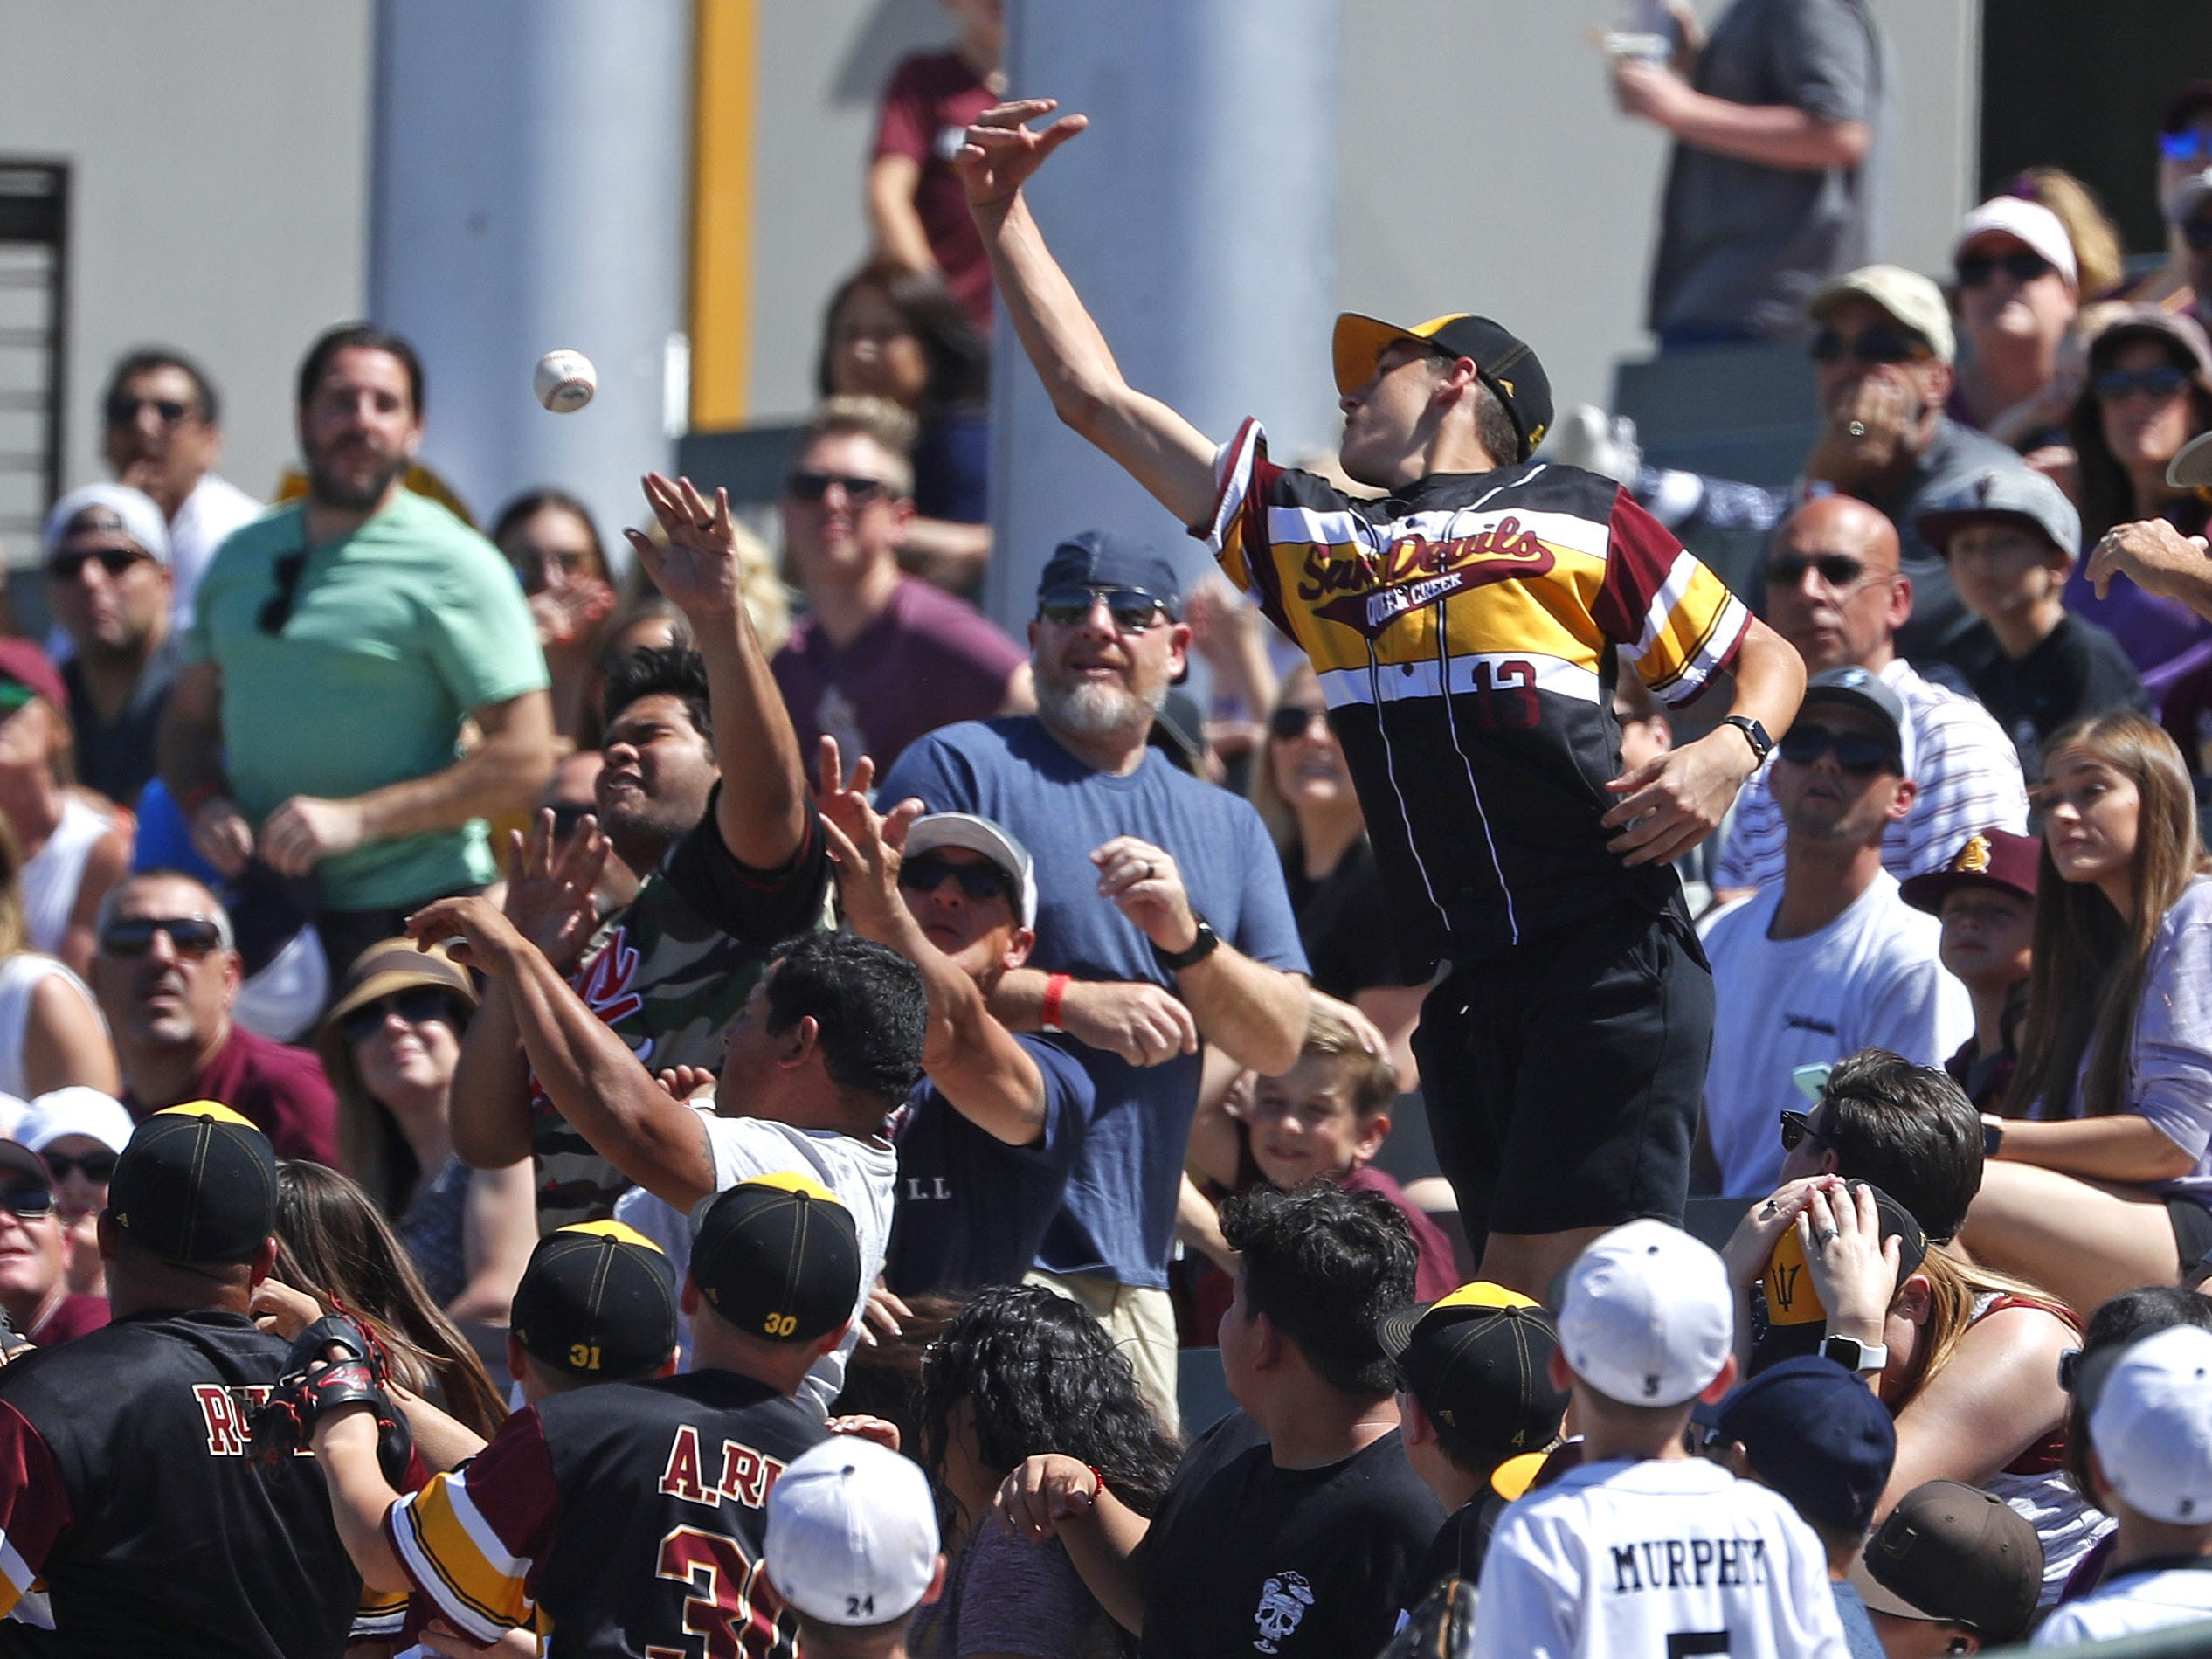 ASU fans try to grab a foul ball during a game against Arizona at Phoenix Municipal Stadium in Phoenix, Ariz. on March 30, 2019.